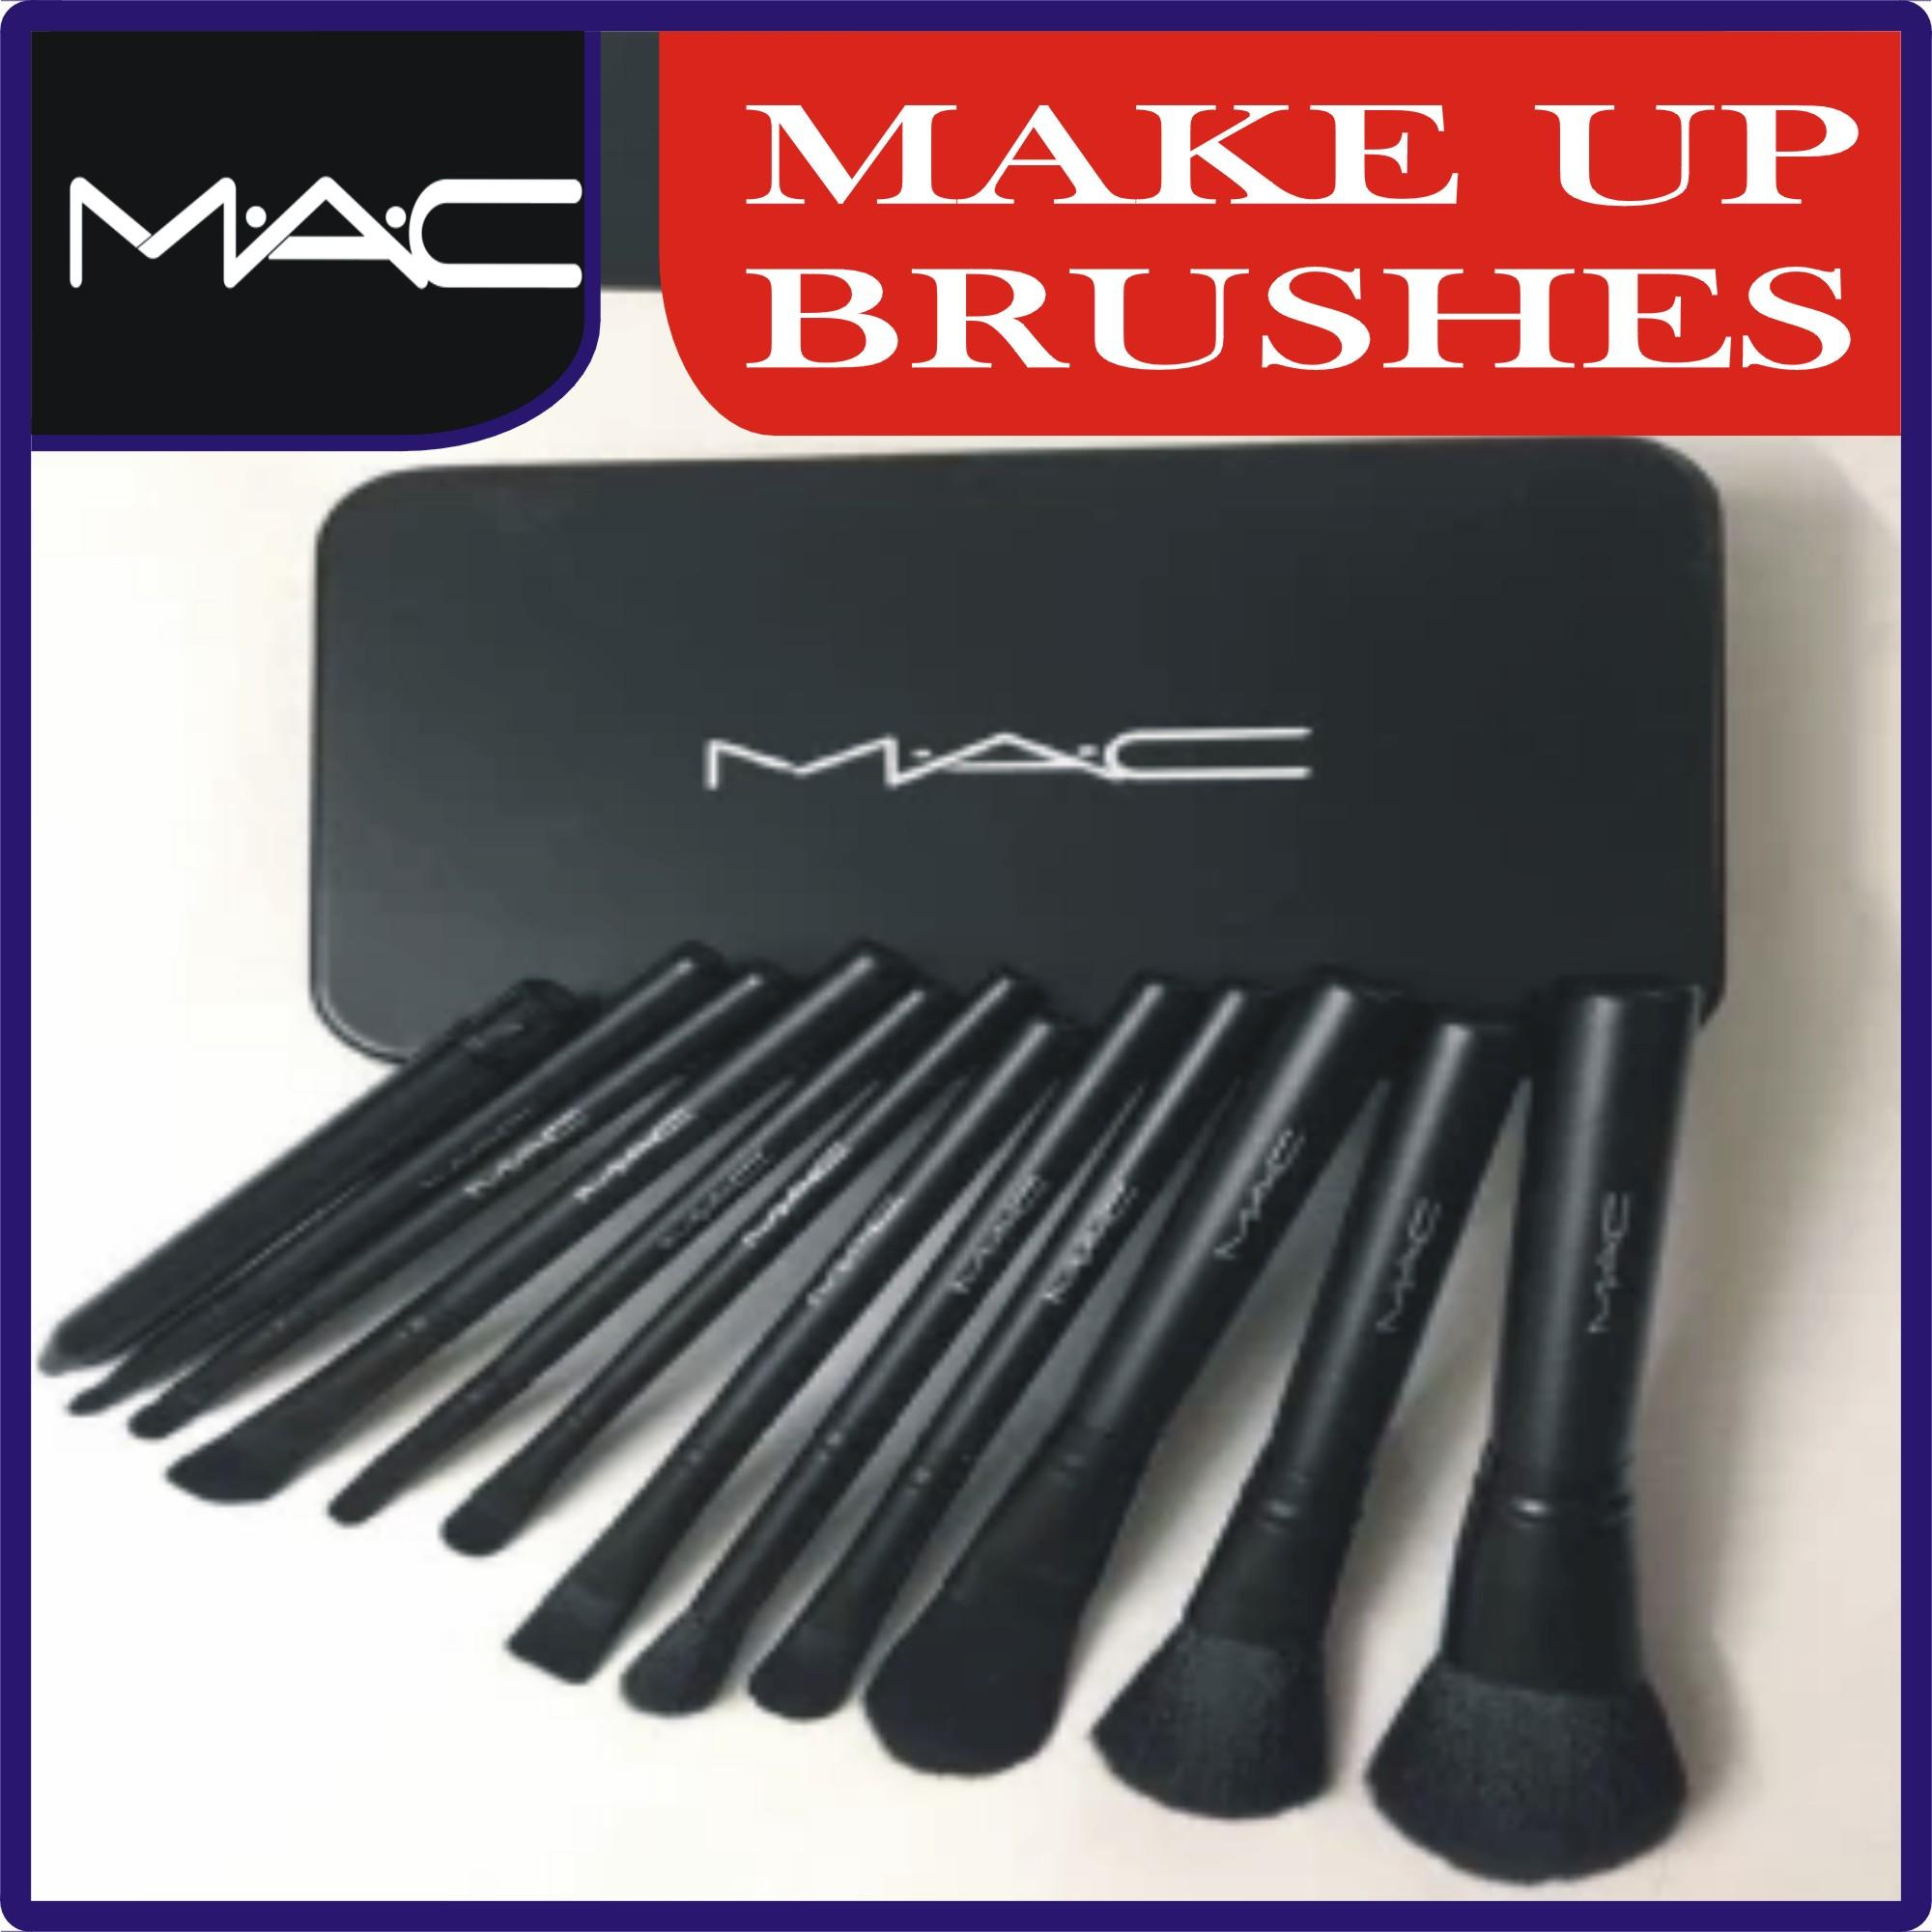 M.A.C Makeup Brush Set 12 Pcs Set in Steel Box